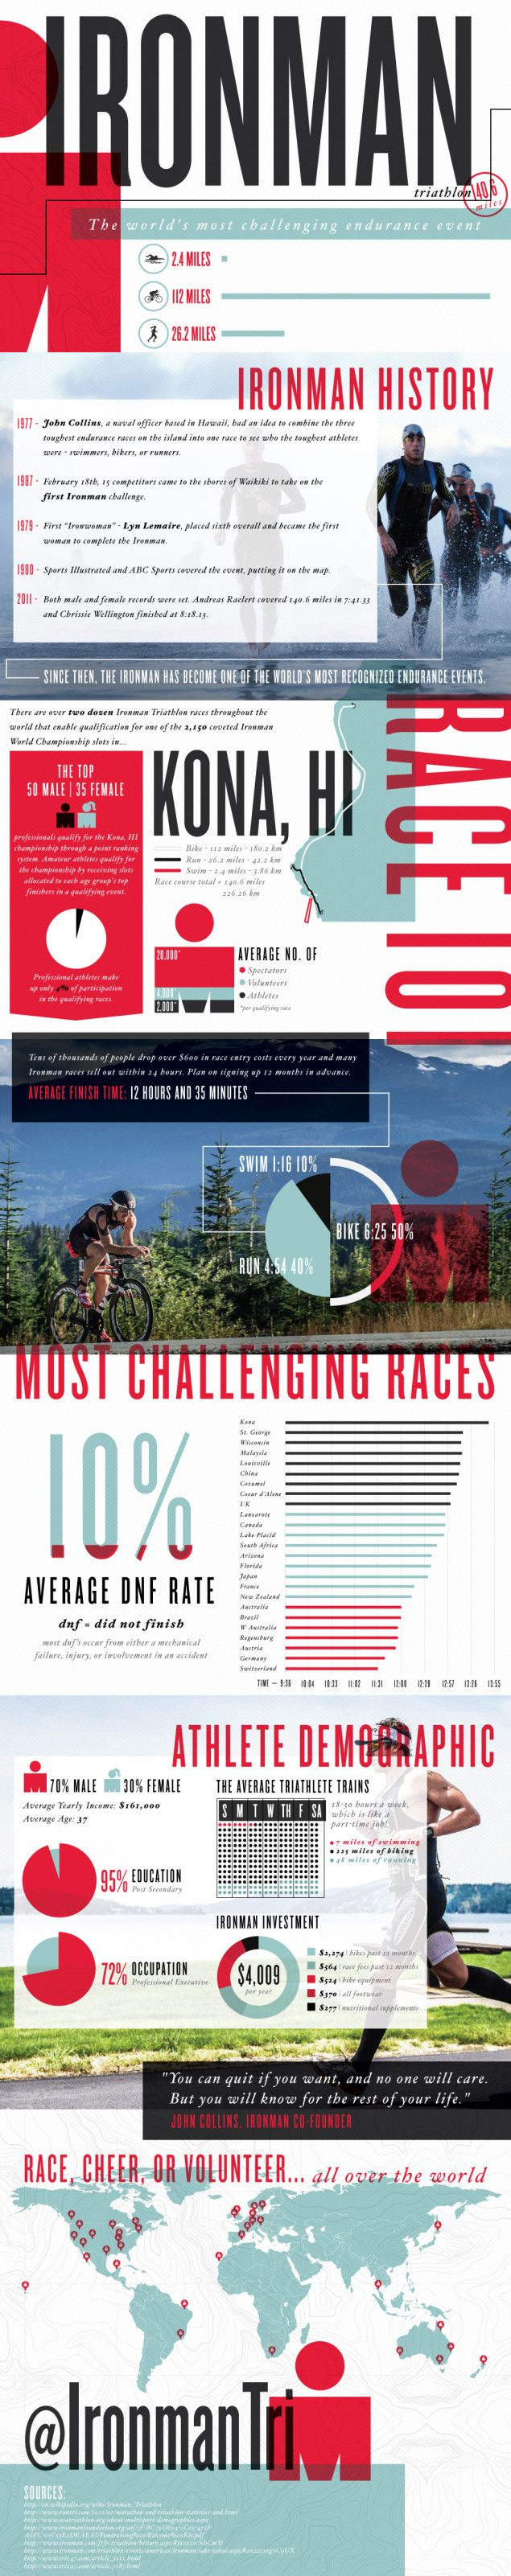 Ironman Triathlon Infographic | Lemonly #triathlon #triathlete #fitness…